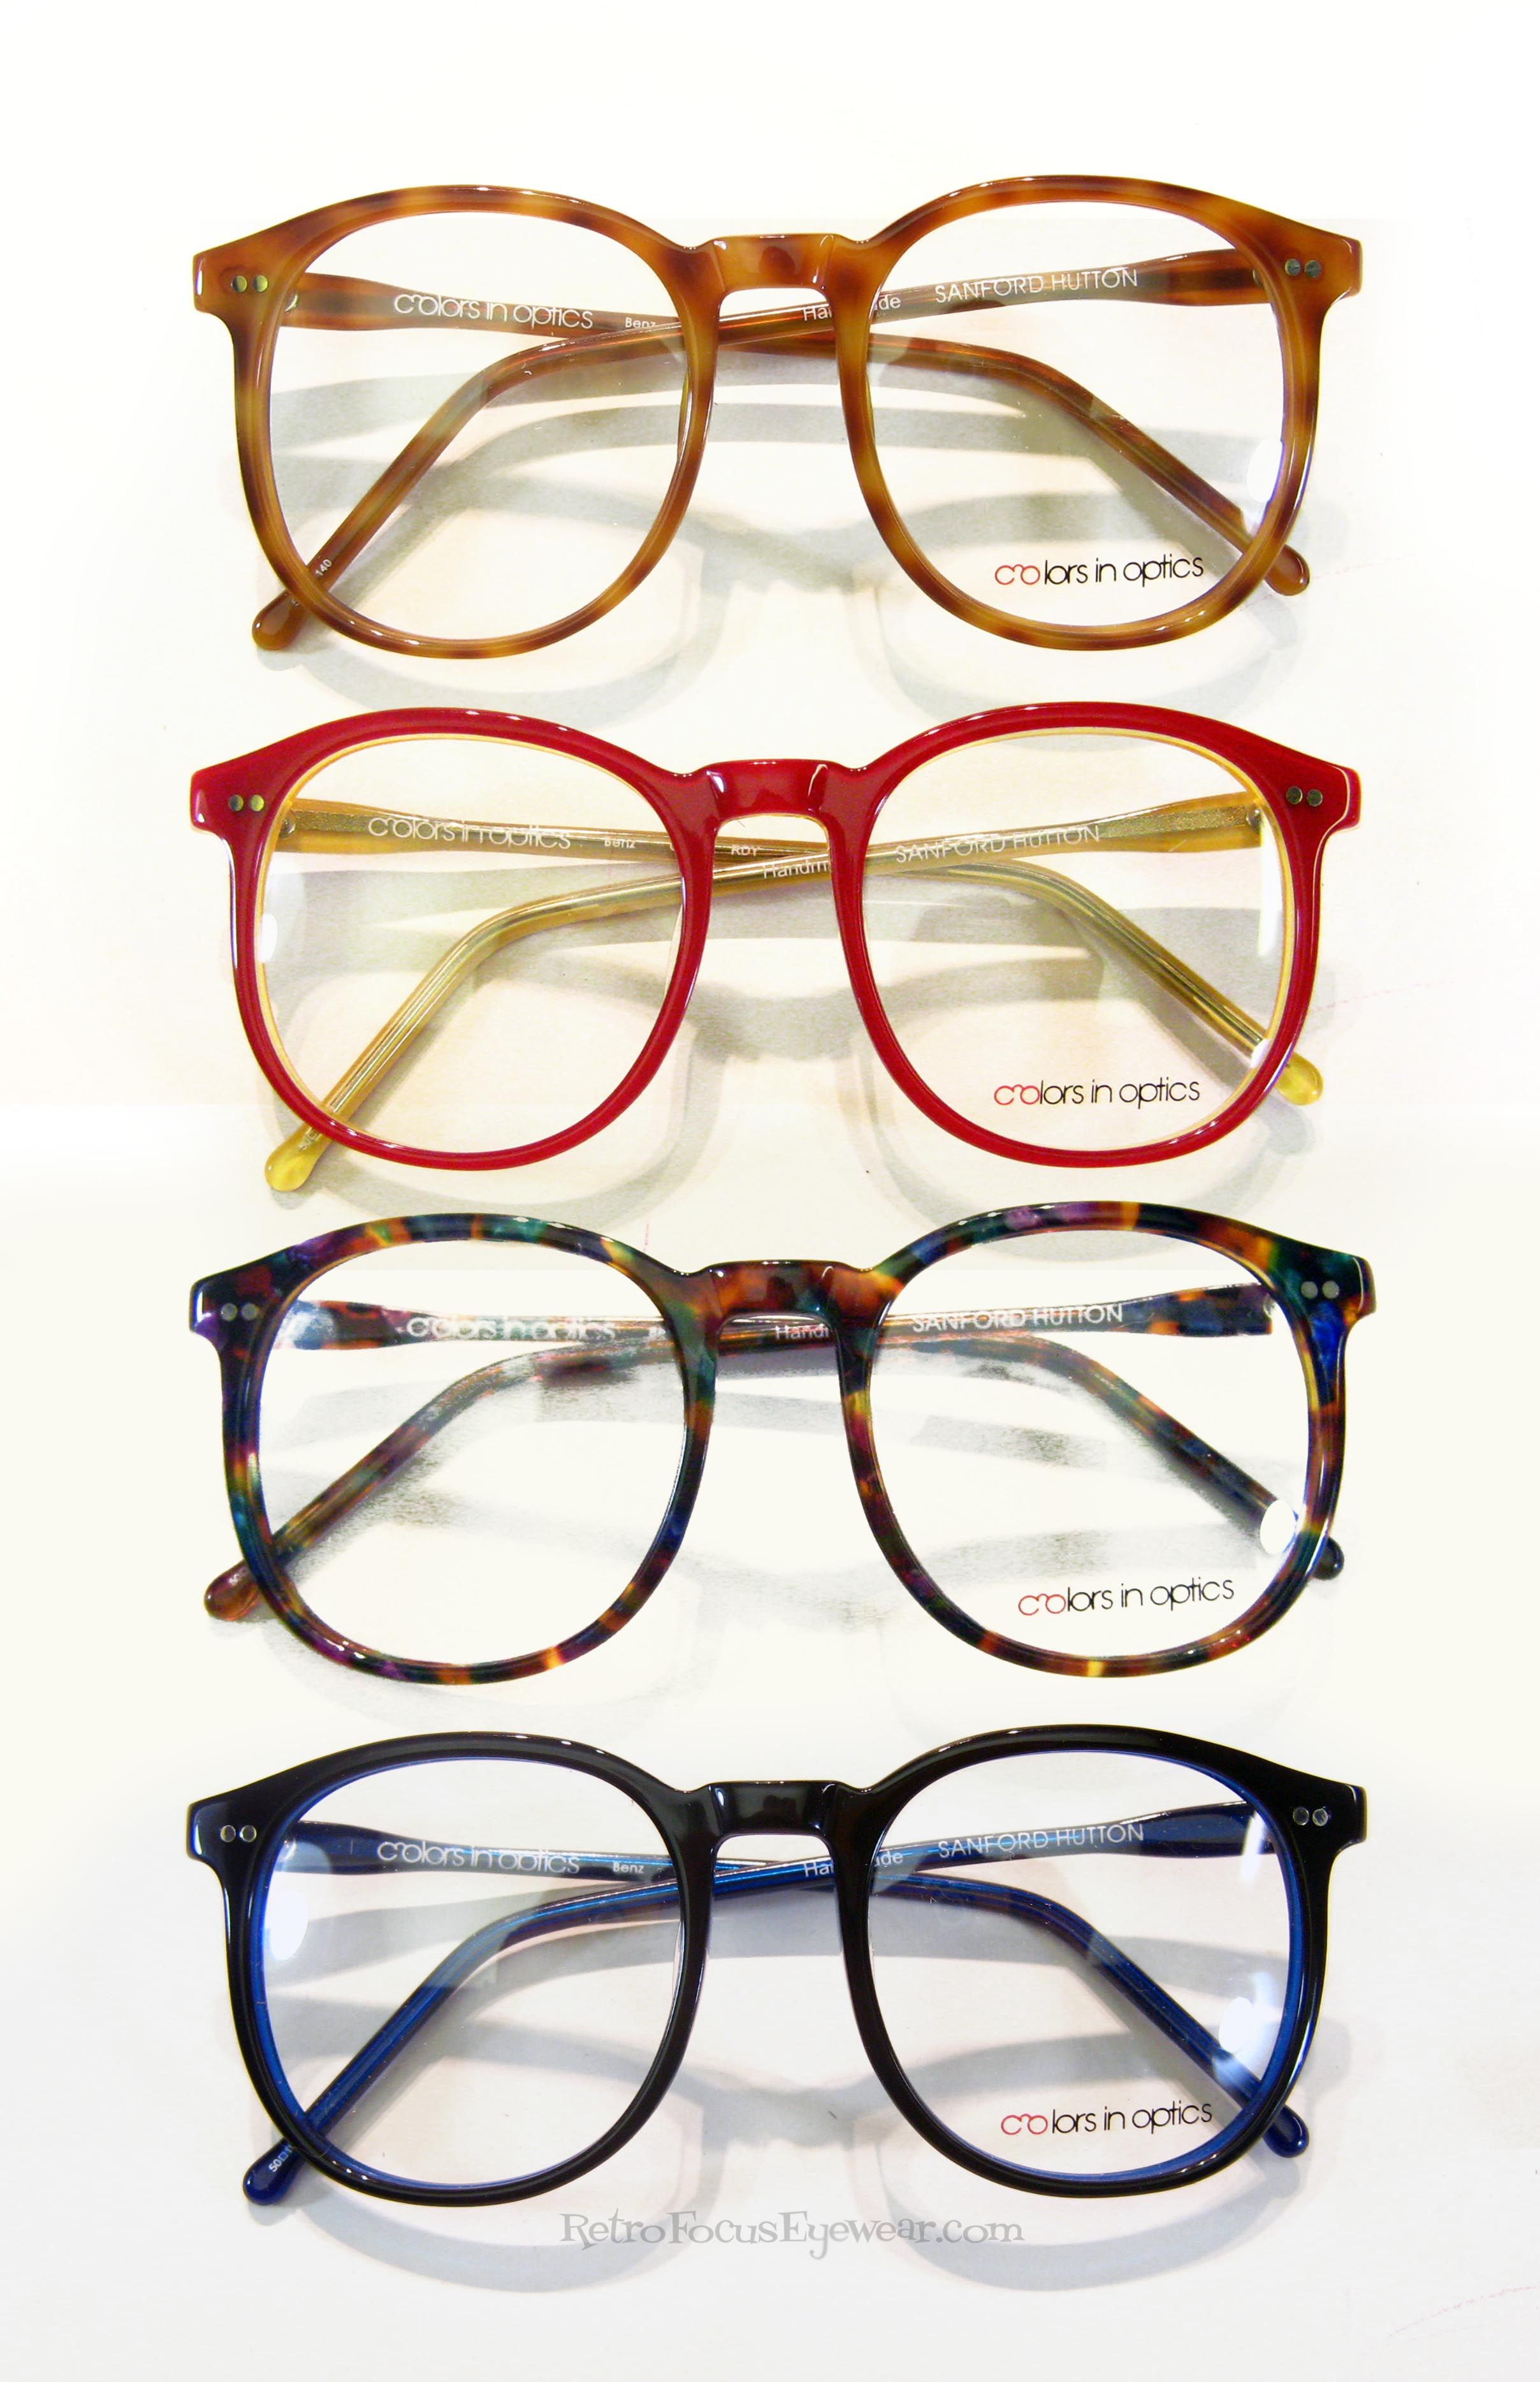 70's styled oversized eyeglass frames by Sanford Hutton of Colors in Optics. They come in Red/Yellow, Black/Royal Blue, Multi Tortoise, and Amber Tortoise. Find'm here: https://www.retrofocuseyewear.com/optical-frames/colors-in-optics-sanford-hutton/square-panto-horn-rimmed-eyeglass-frames/C913/red-yellow/black-royal-blue/amber-blonde-tortoise/multi-tortoise